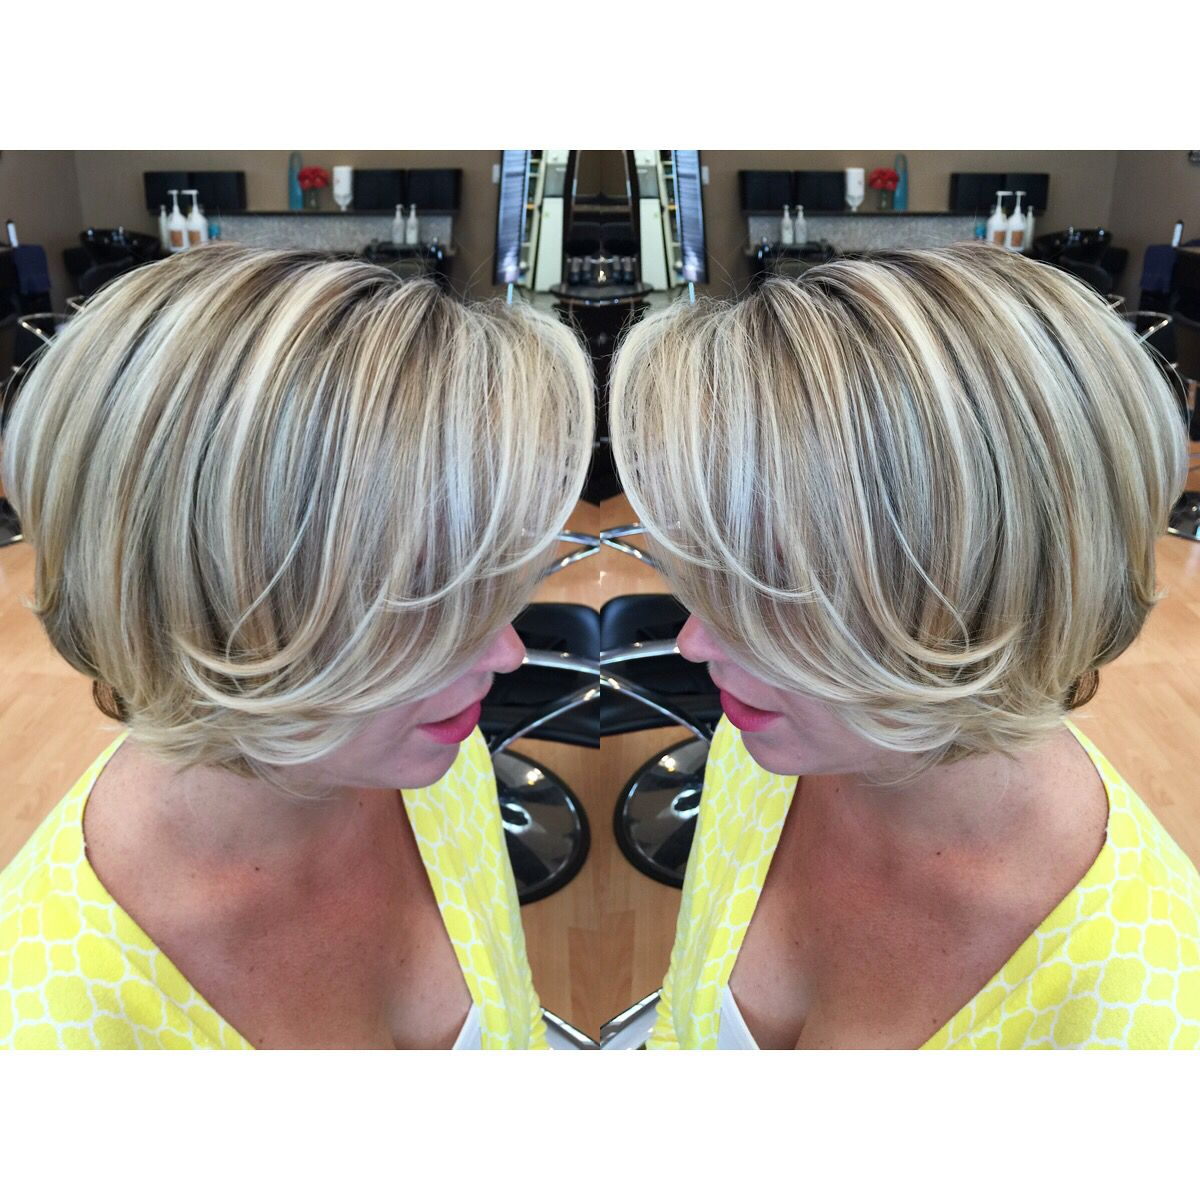 Image Result For Gray Hair Highlights And Lowlights Hair